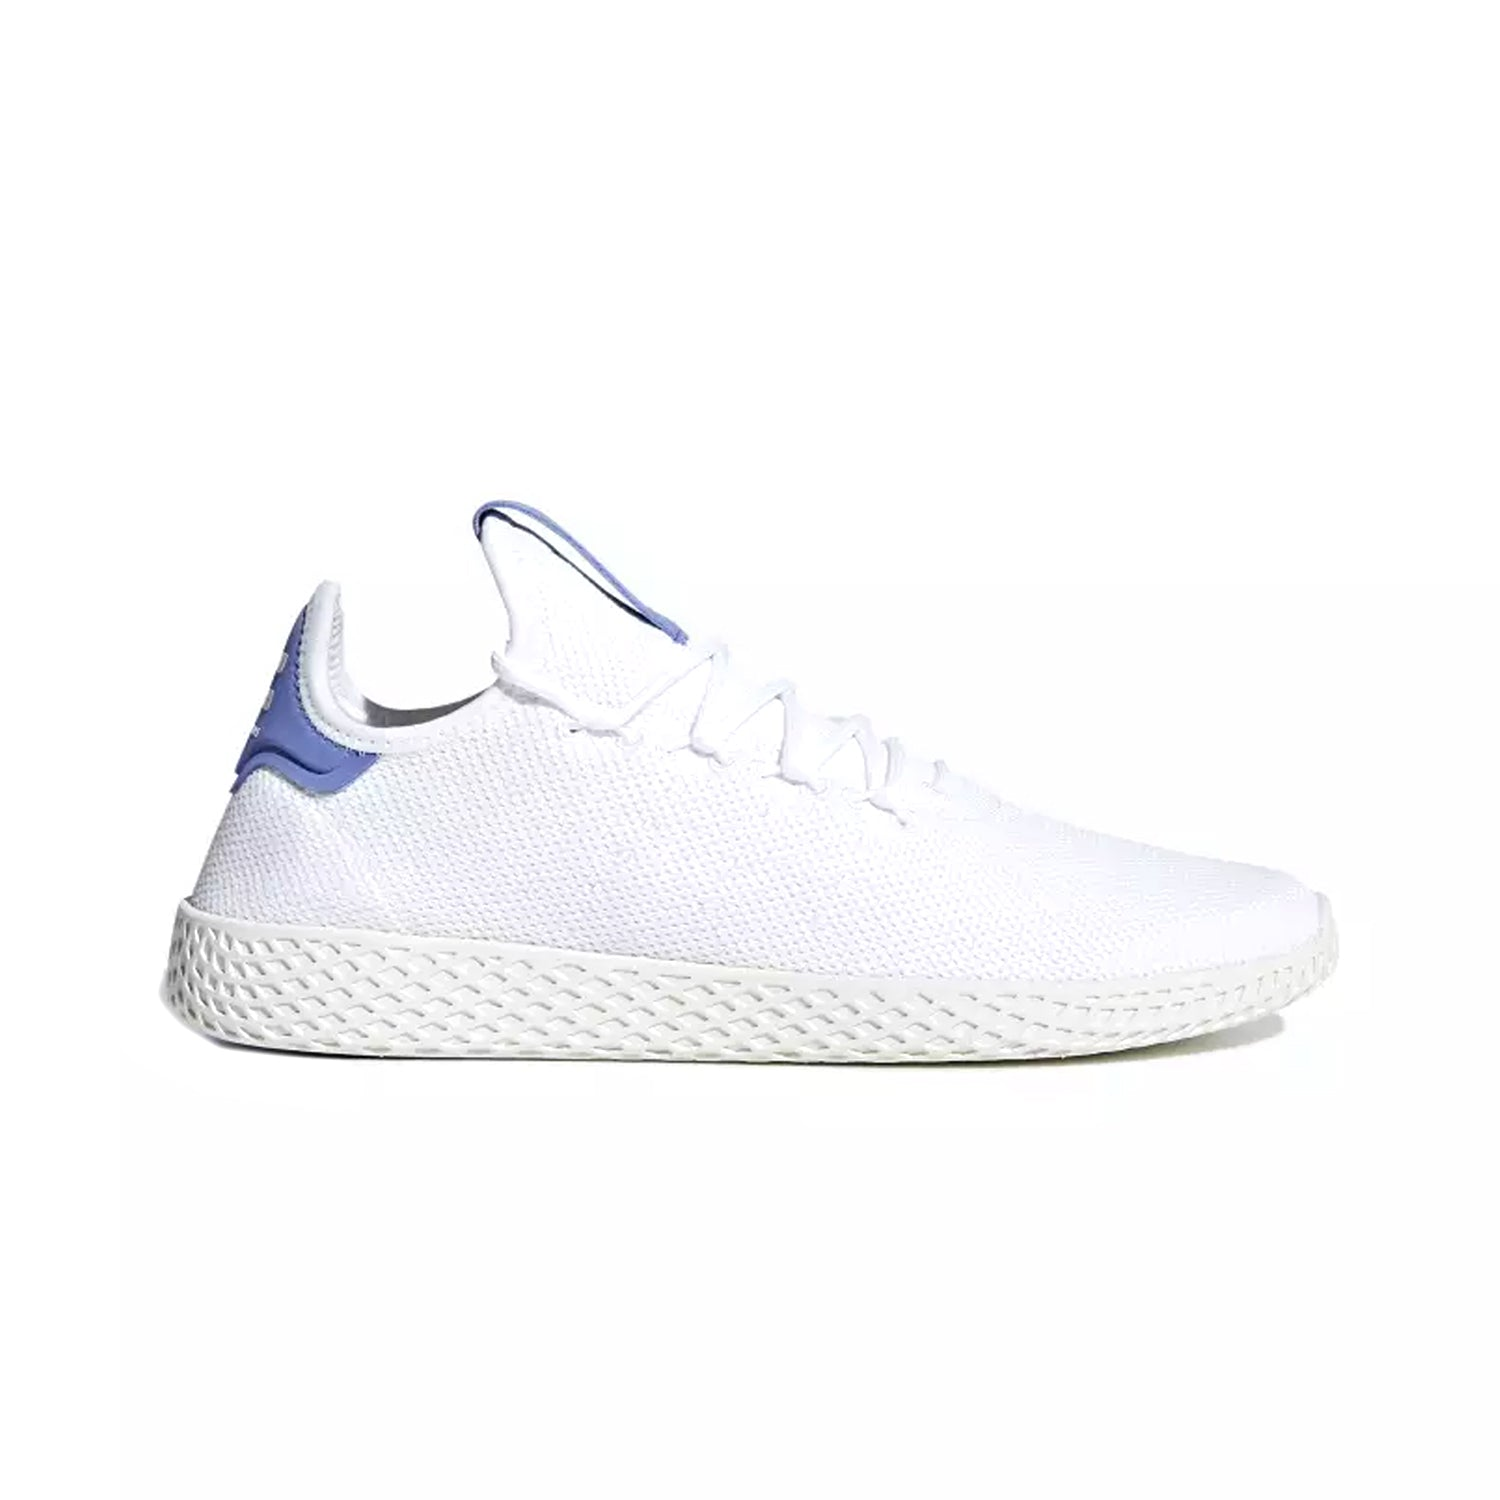 PW TENNIS HU WHITE/LAVENDER